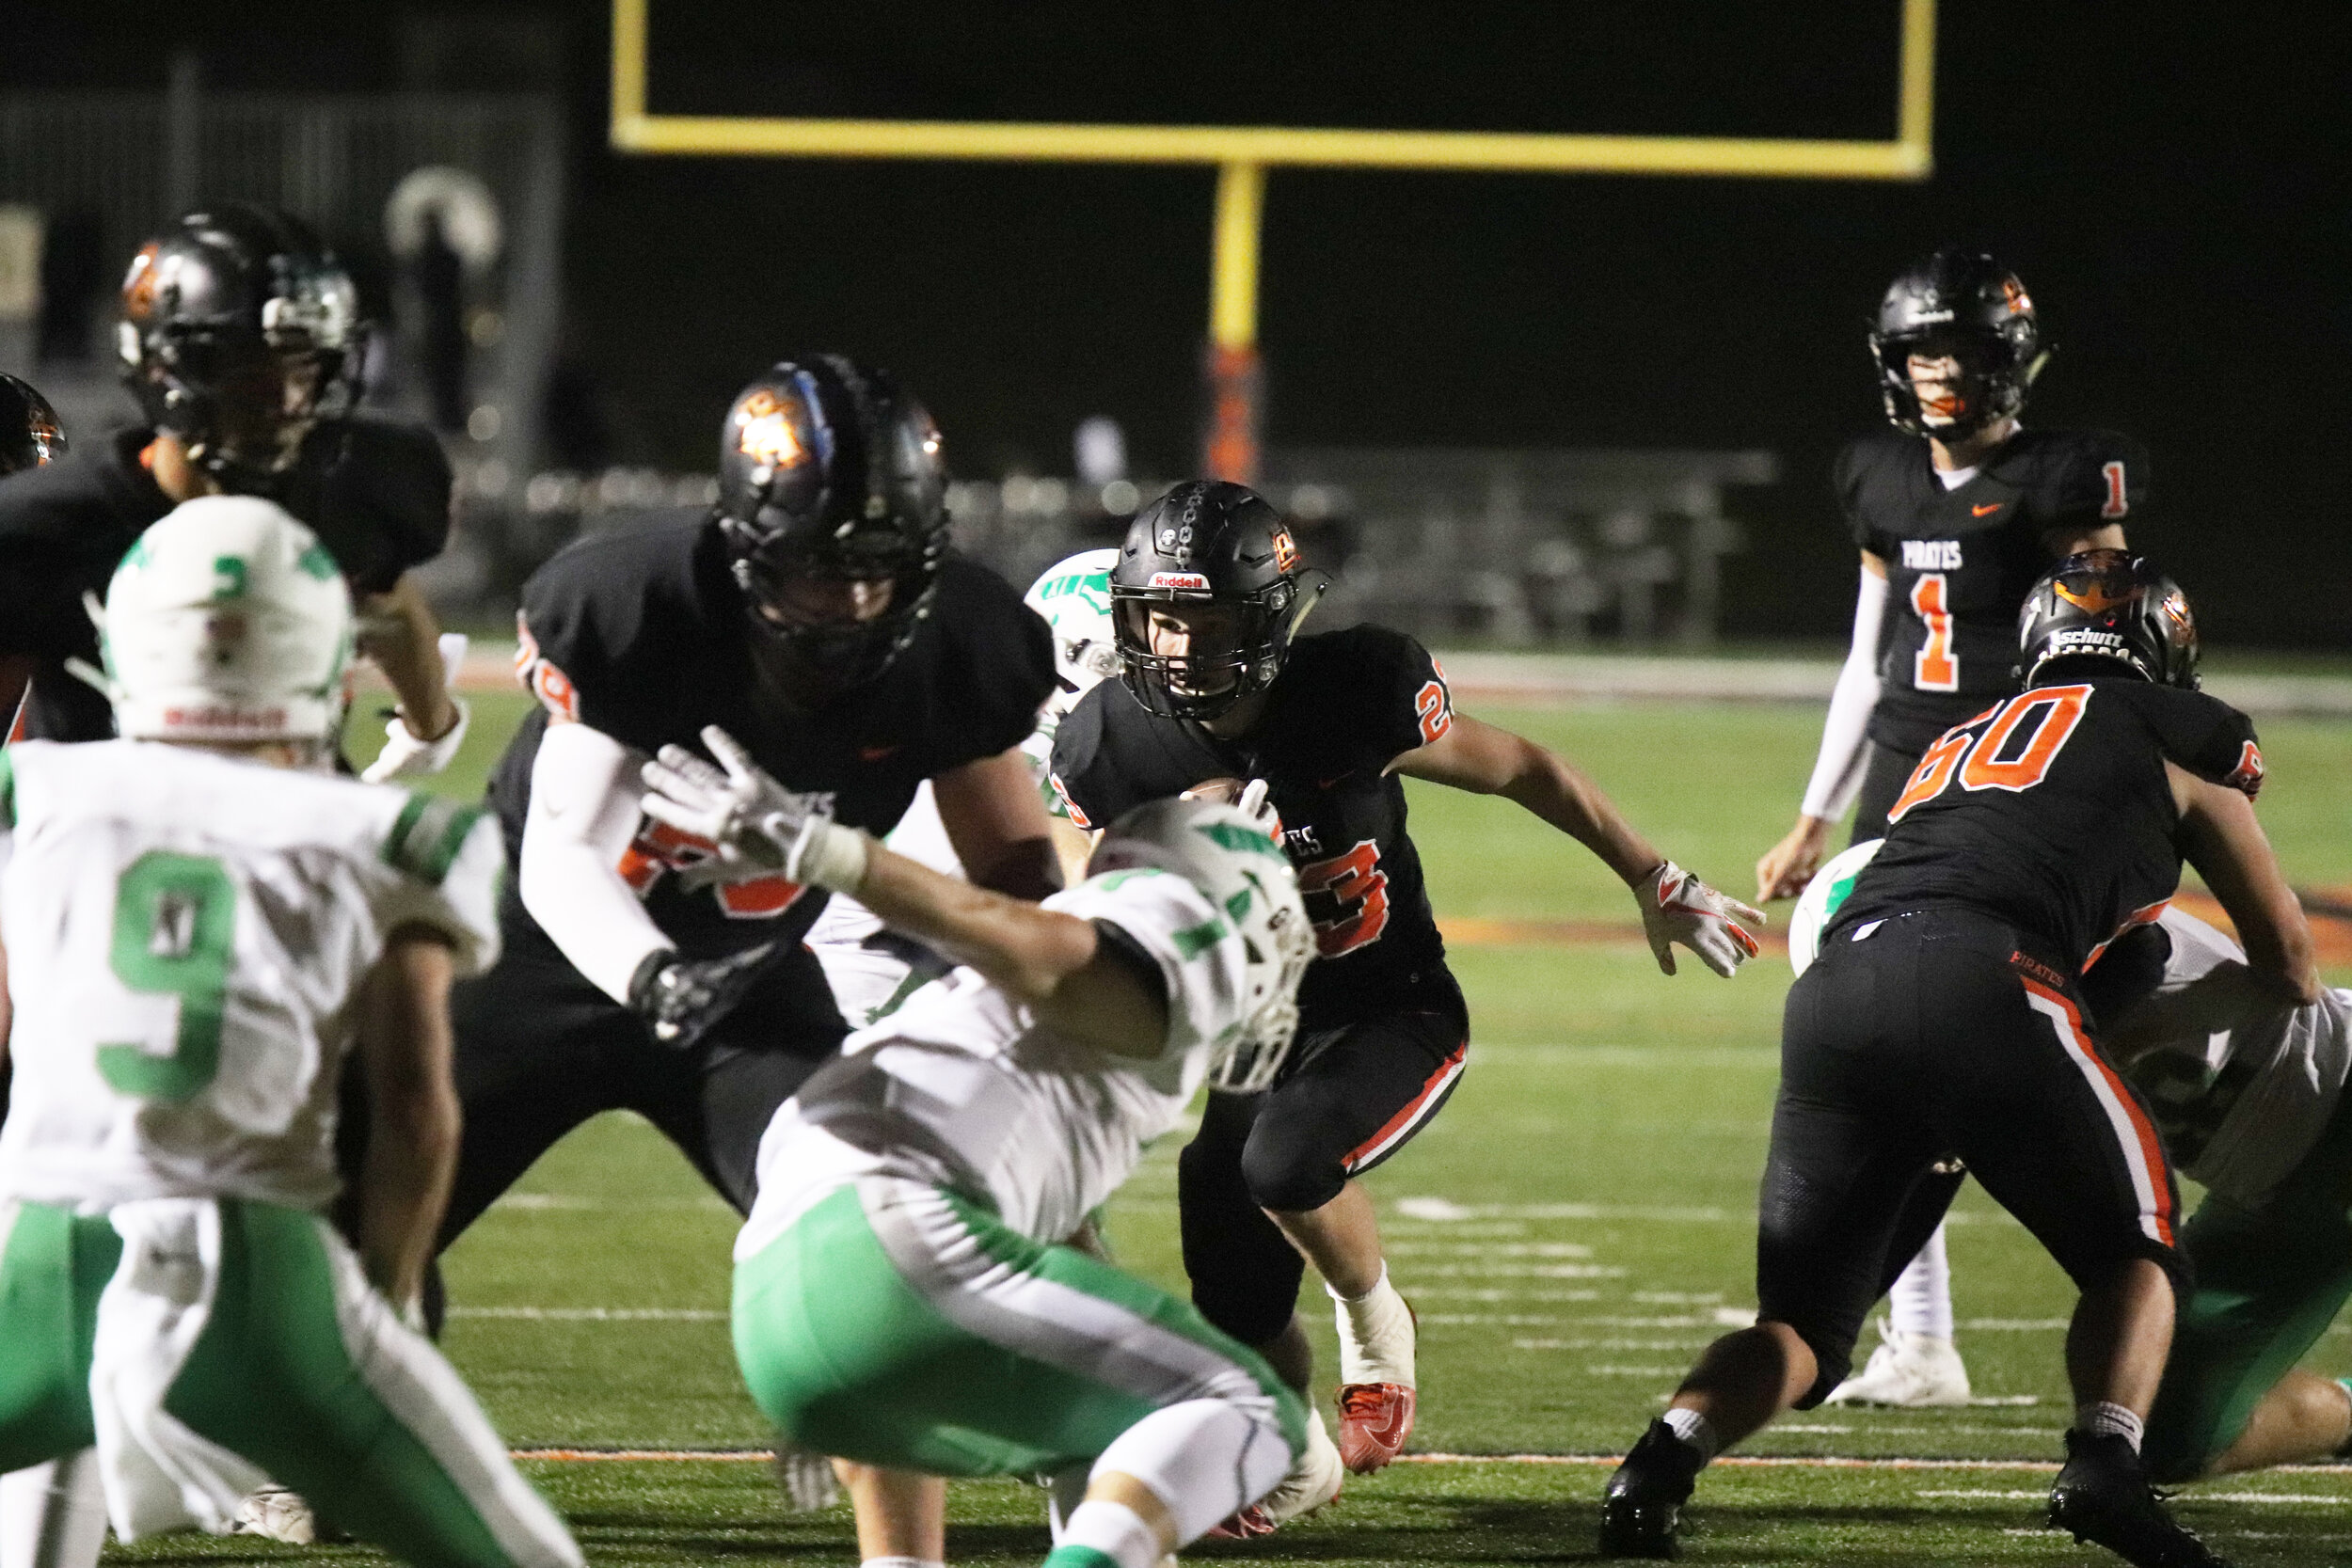 ROSS MARTIN/Special to the Citizen  Platte County's Cayden Davis, center, runs while getting an opening from offensive linemen Wyett Wallingford (79) and Luek Seigel (60) during a game against Smithville on Friday, Oct. 4 at Pirate Stadium. Platte County won 15-0.